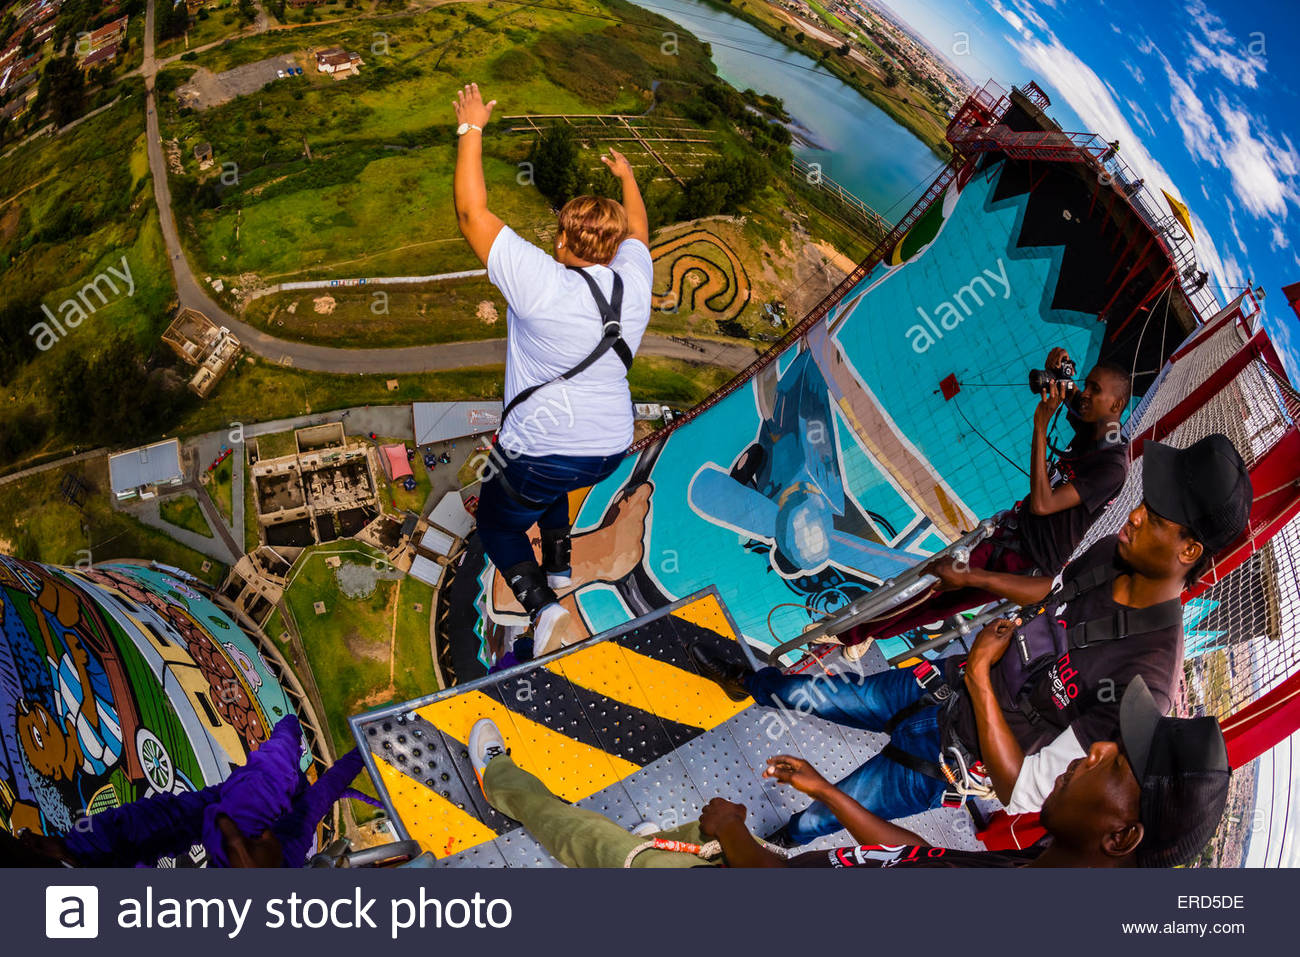 A woman going off the 100 meter (328 foot) bungee jump at